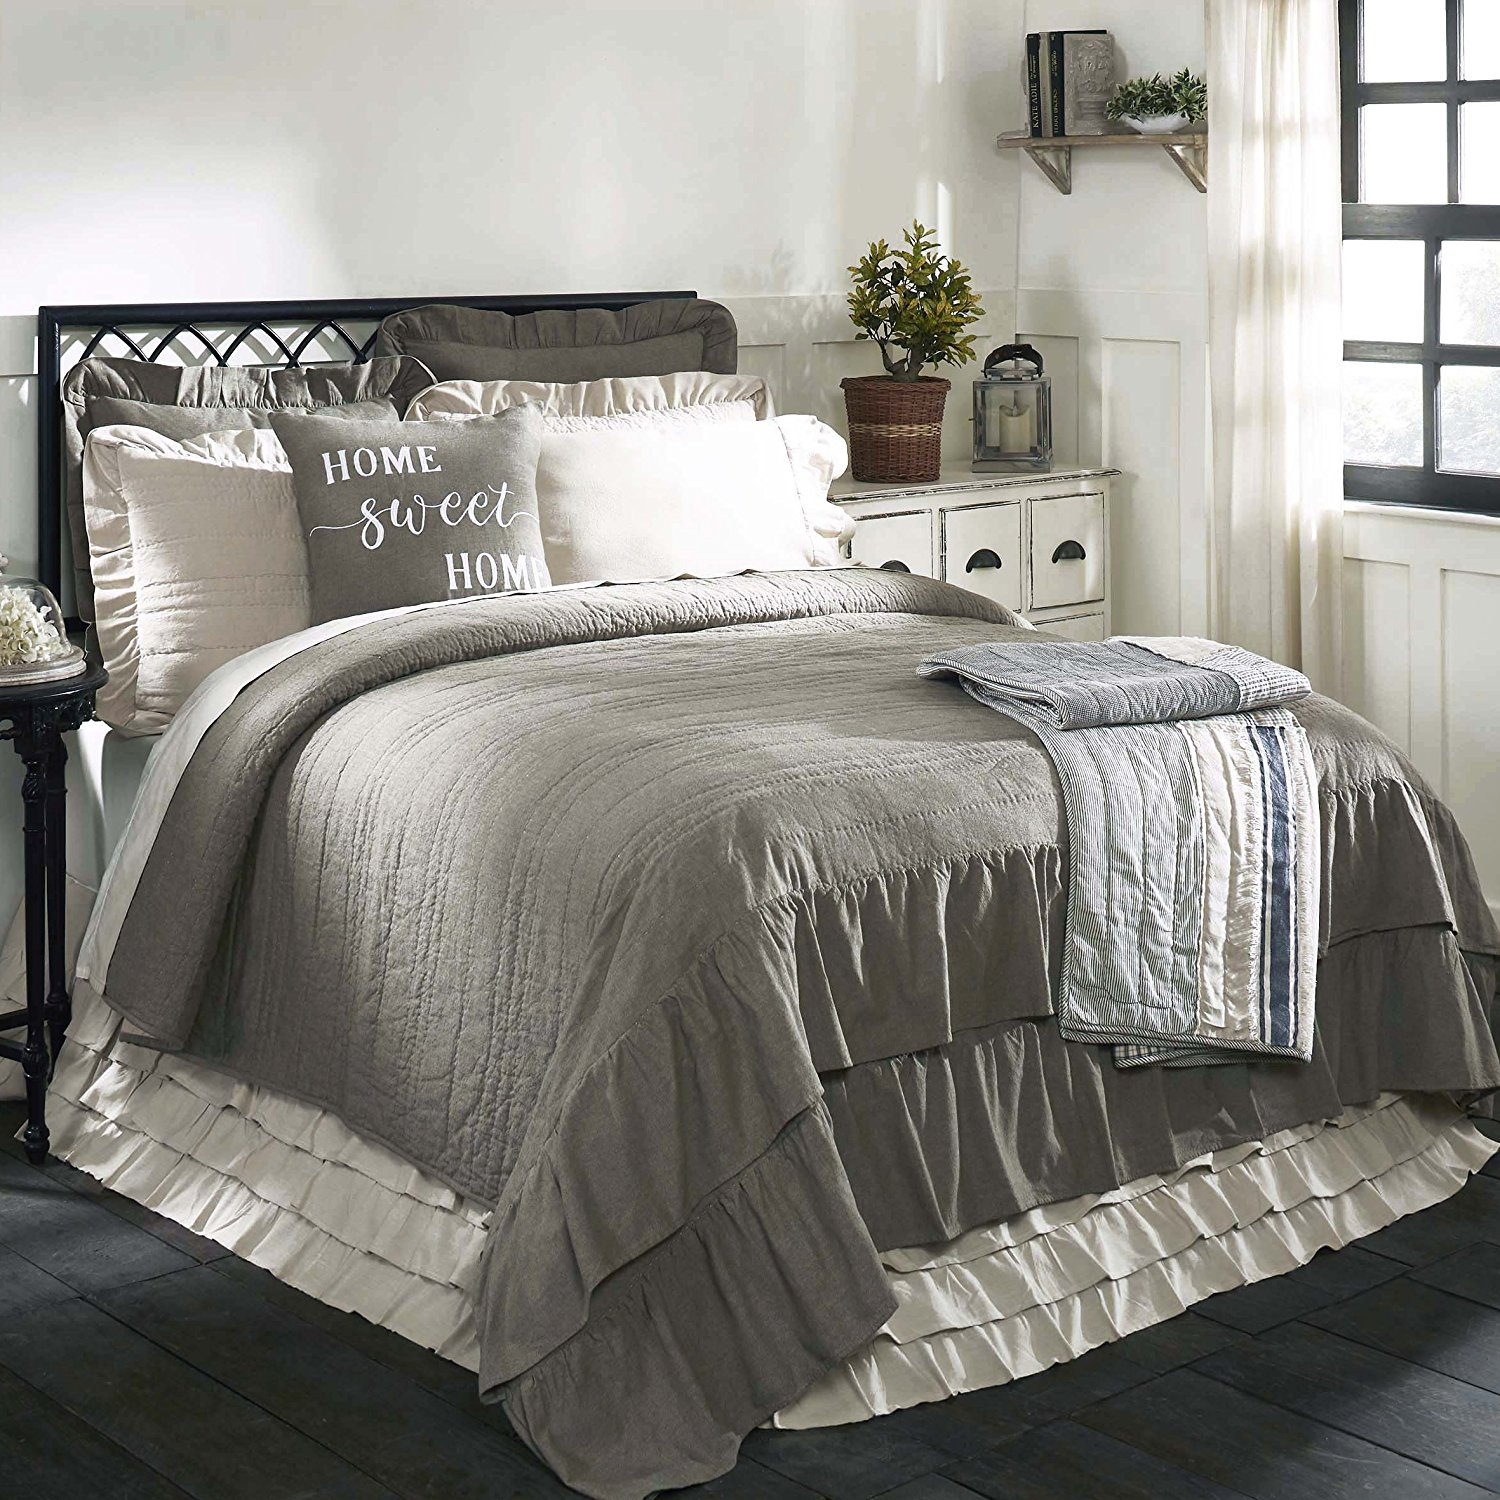 Take your bedroom to the next level by adding stylish farmhouse bedding! I've gathered gorgeous accessories for your bed to give you lots of ideas as you style your bedroom using farmhouse bedding!